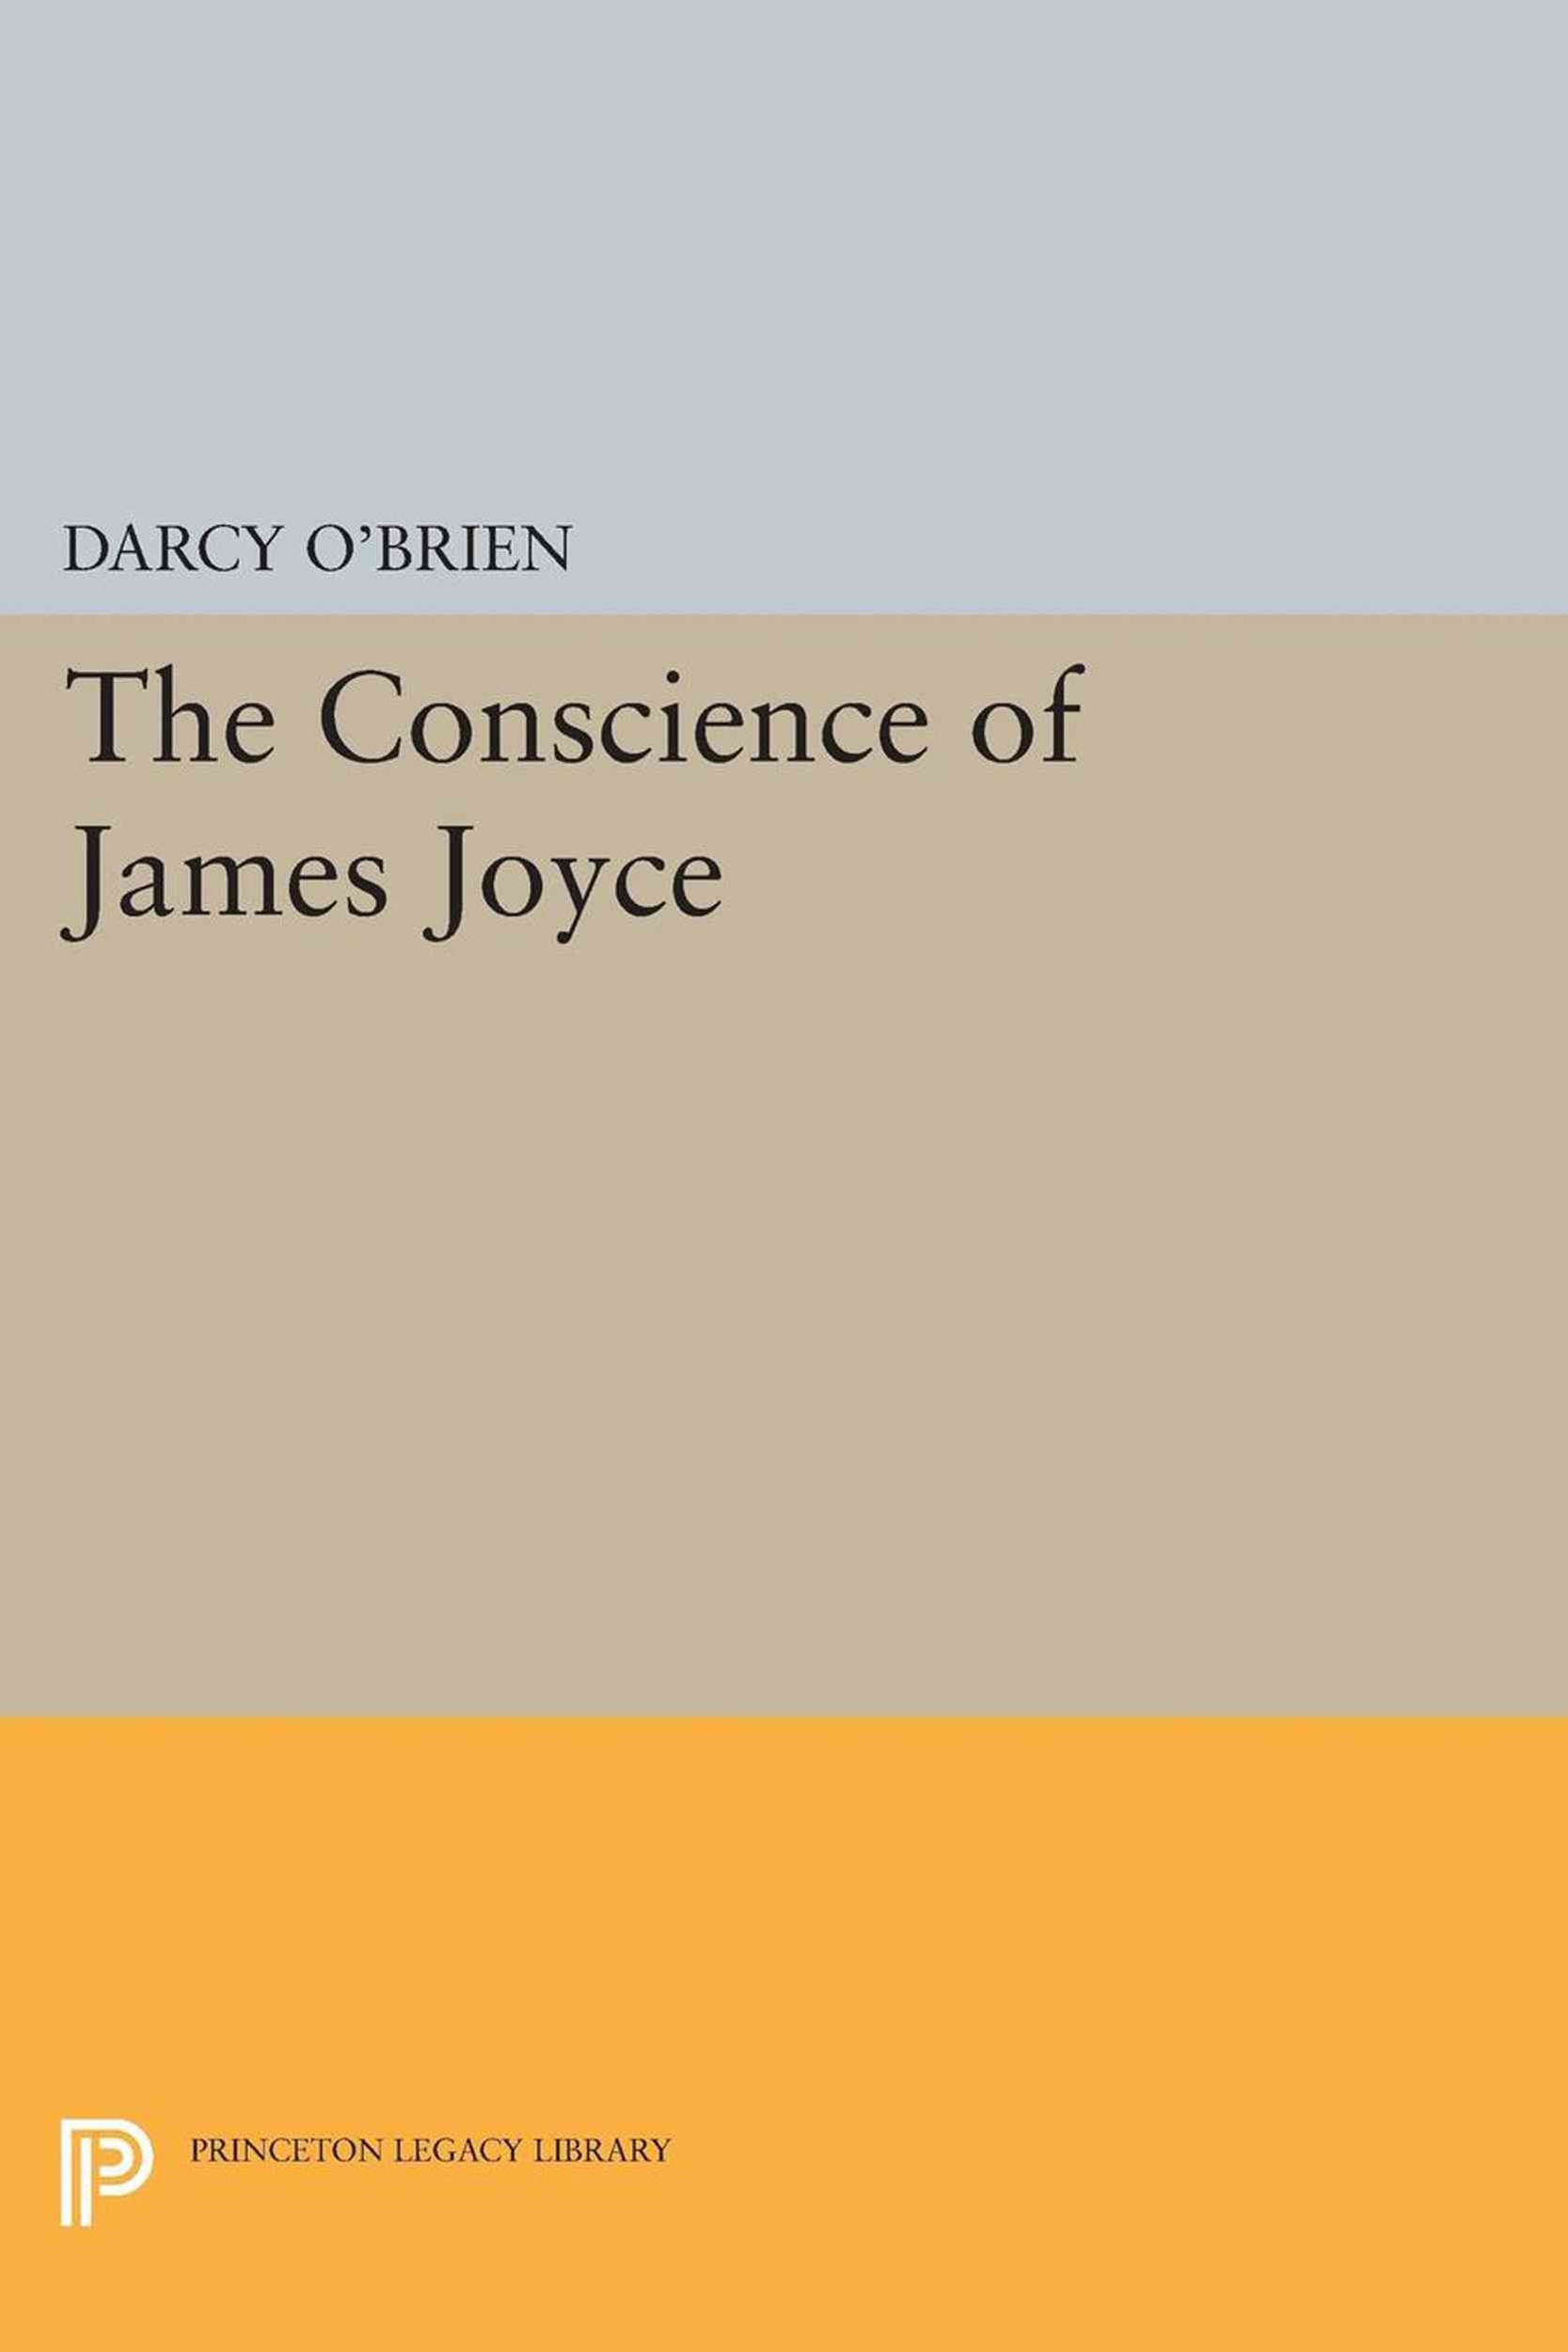 The Conscience of James Joyce